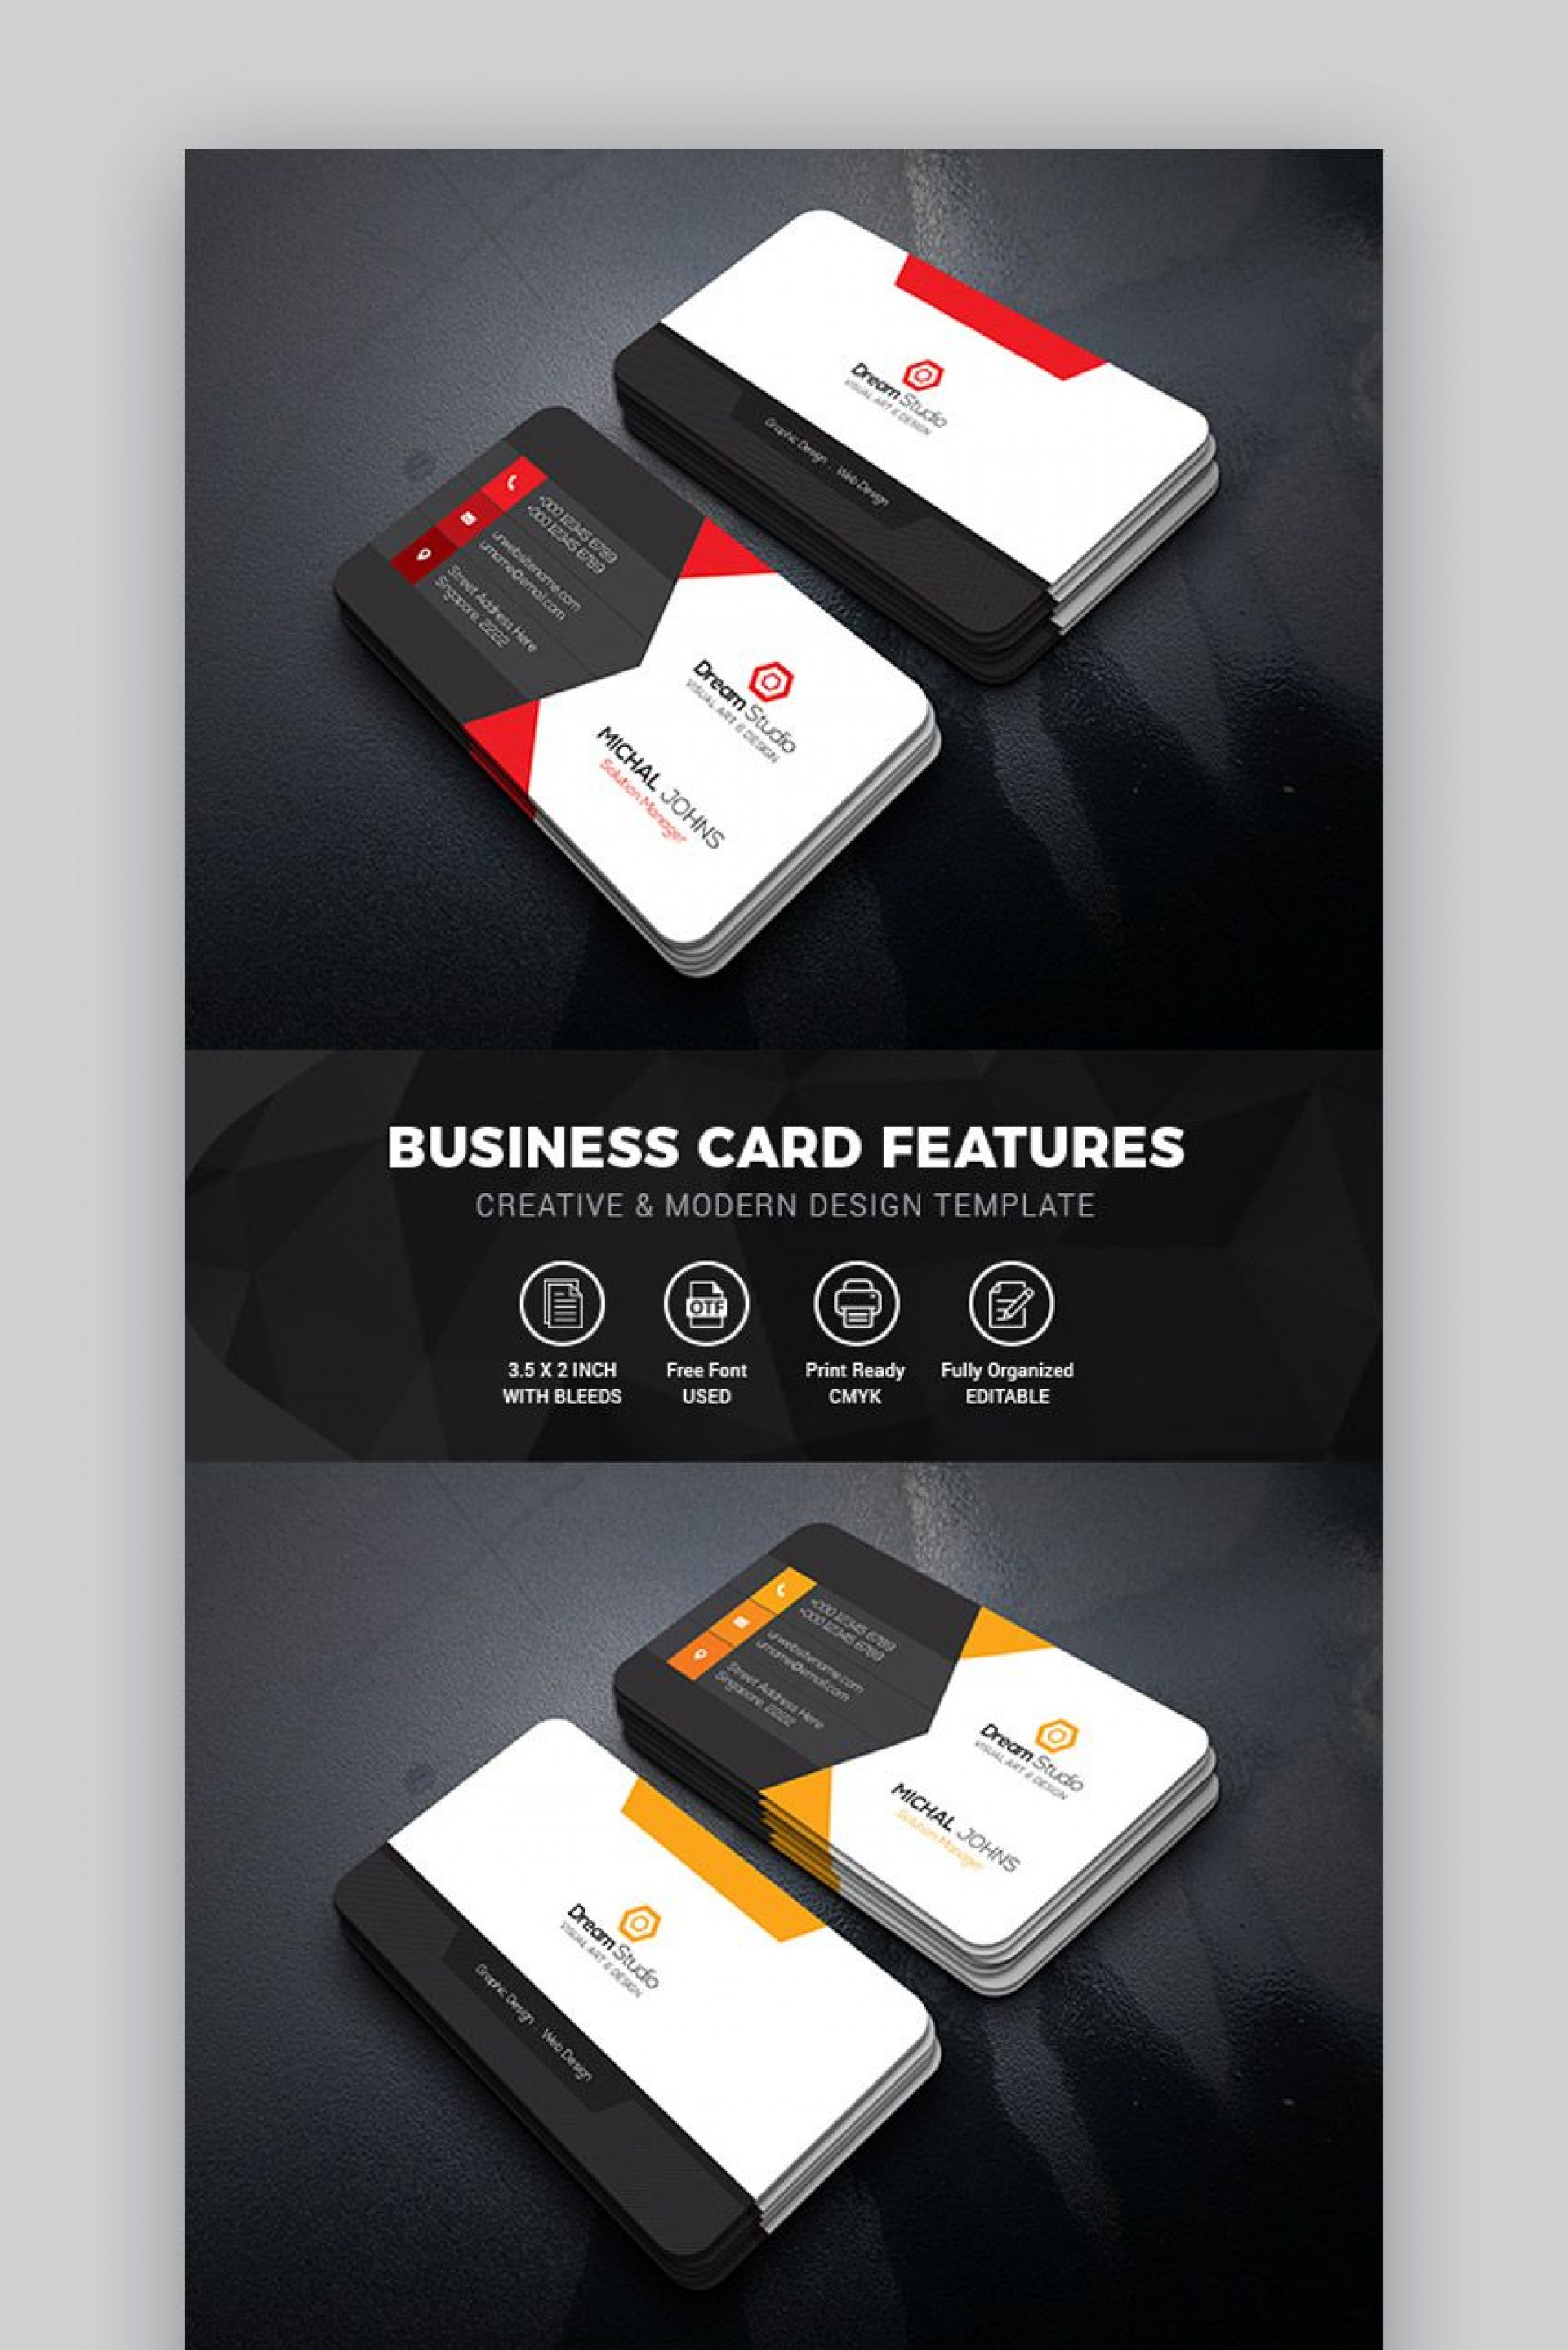 008 Impressive Blank Busines Card Template Psd Free Concept  Photoshop Download1920